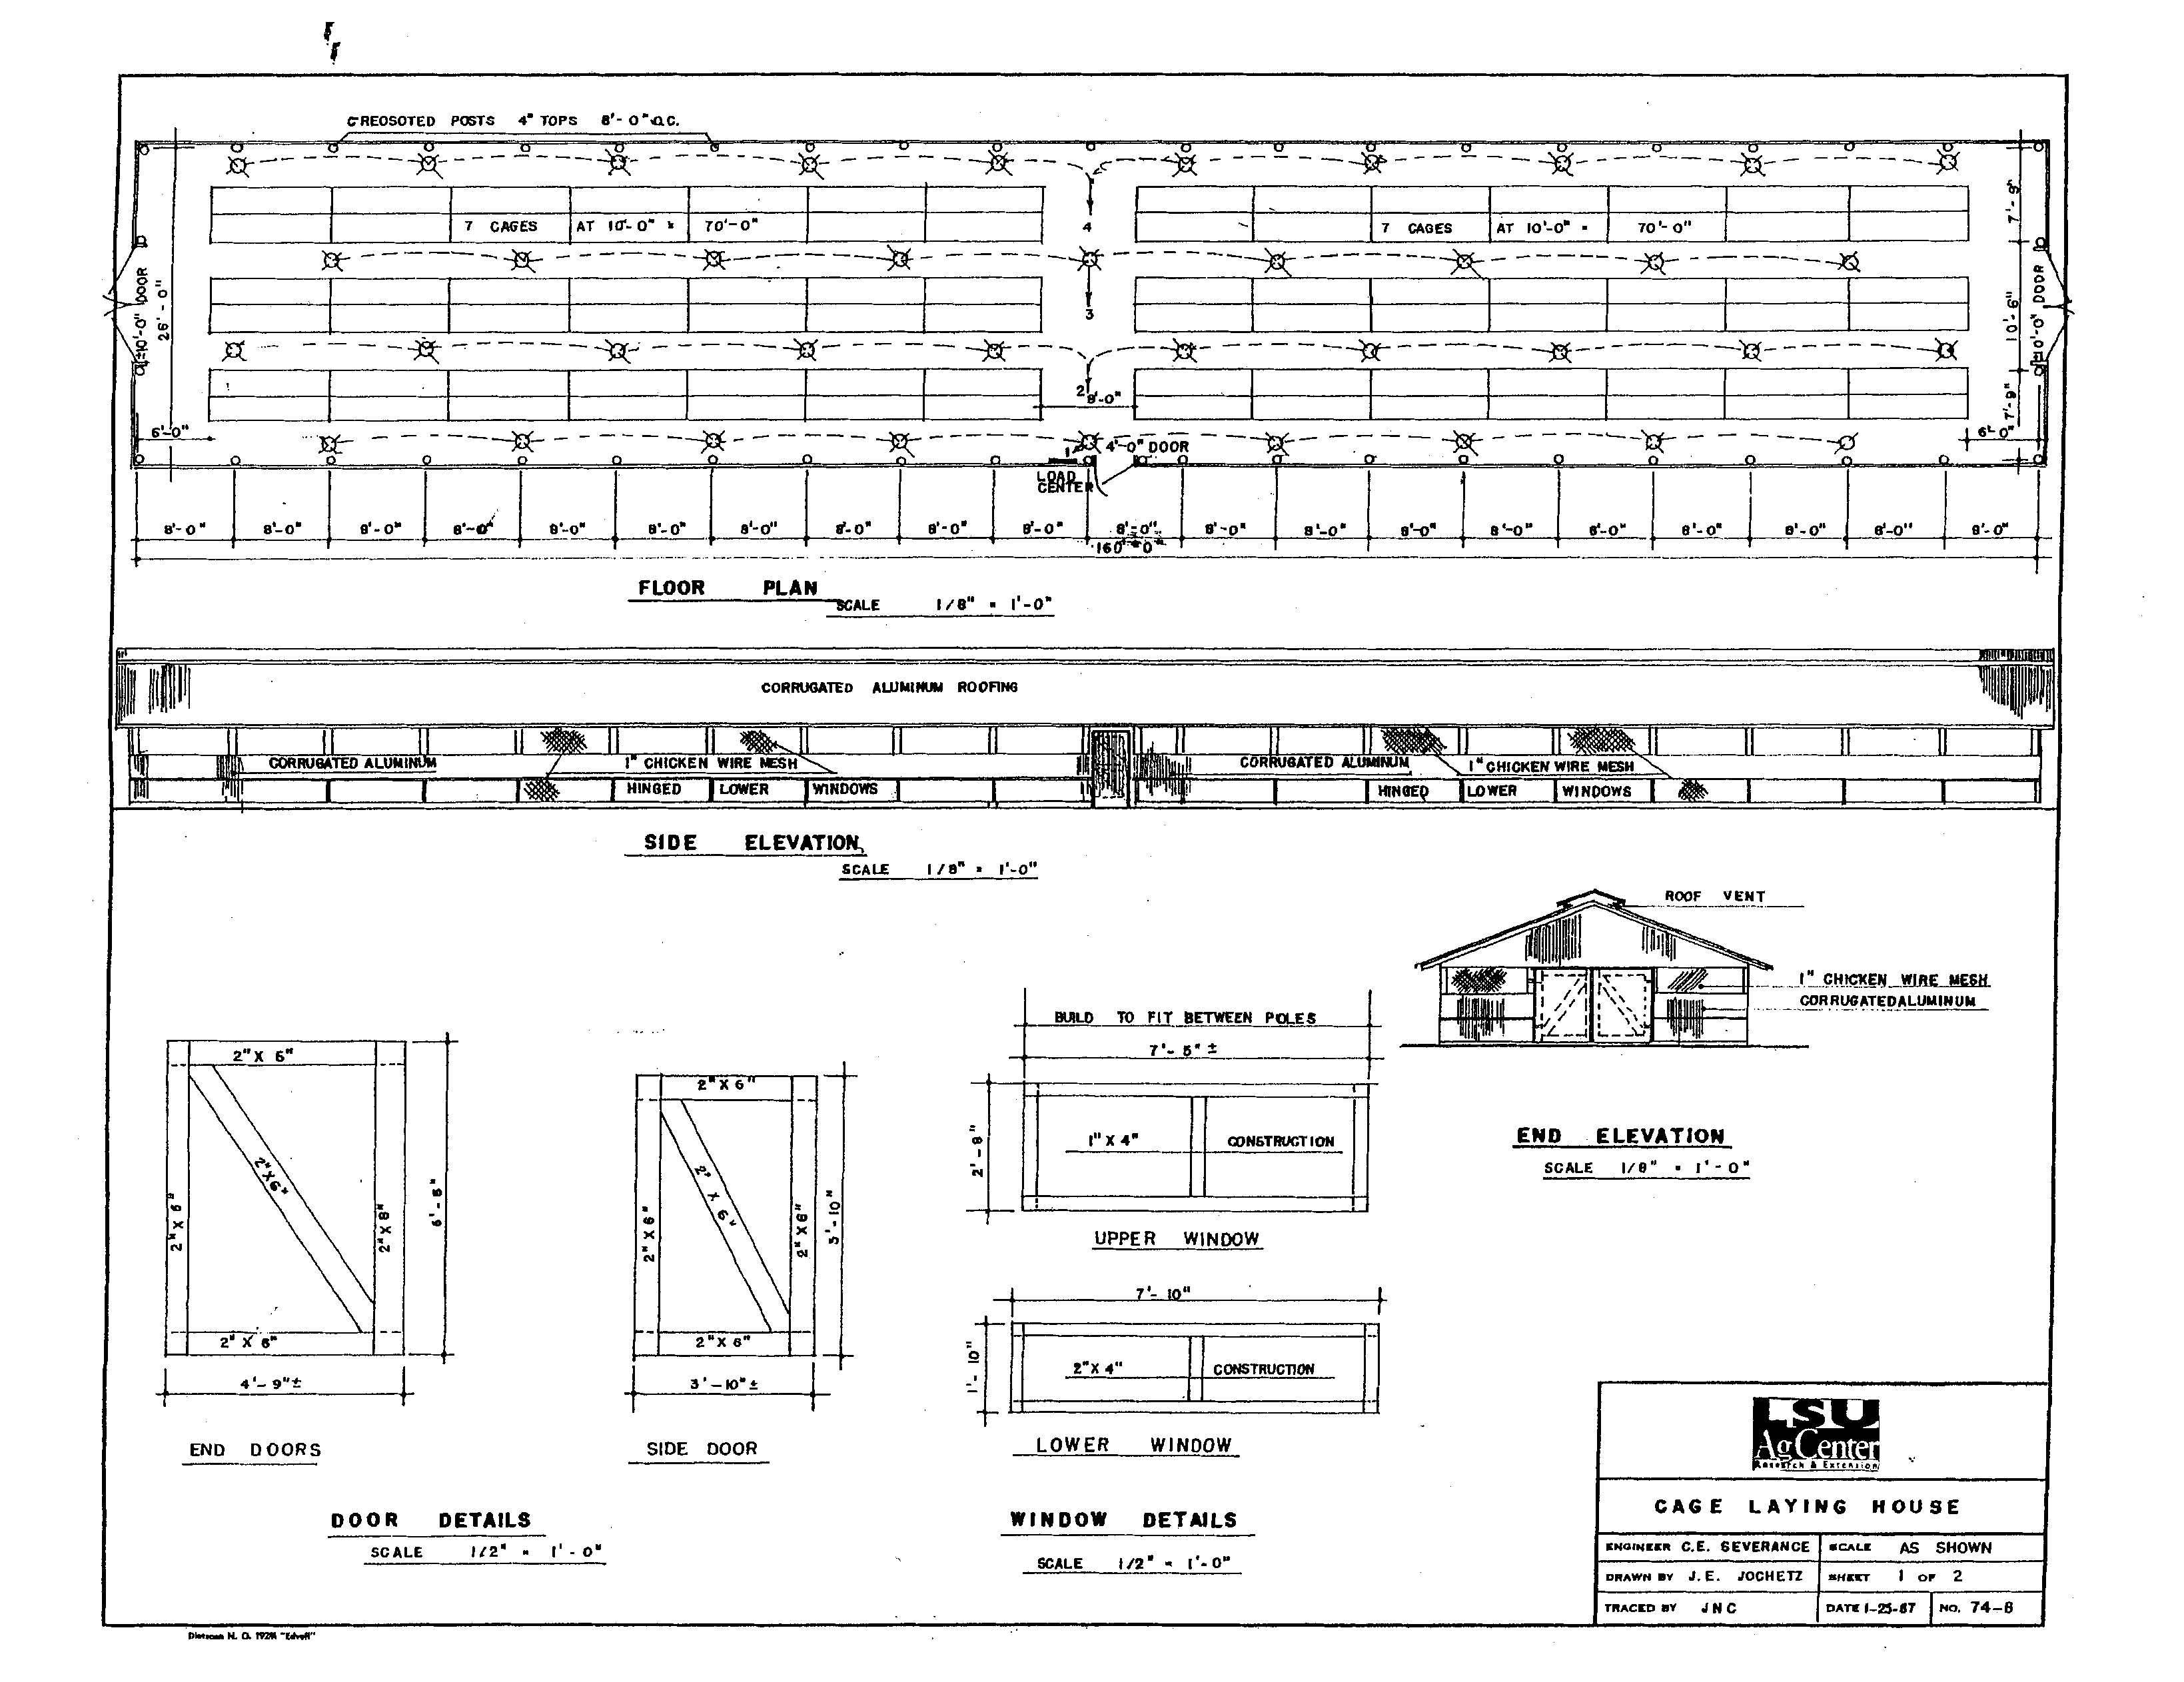 Quail Cage Plans http://www.lsuagcenter.com/en/our_offices/departments/Biological_Ag_Engineering/Features/Extension/Building_Plans/poultry/housing/Cage+Laying+House.htm